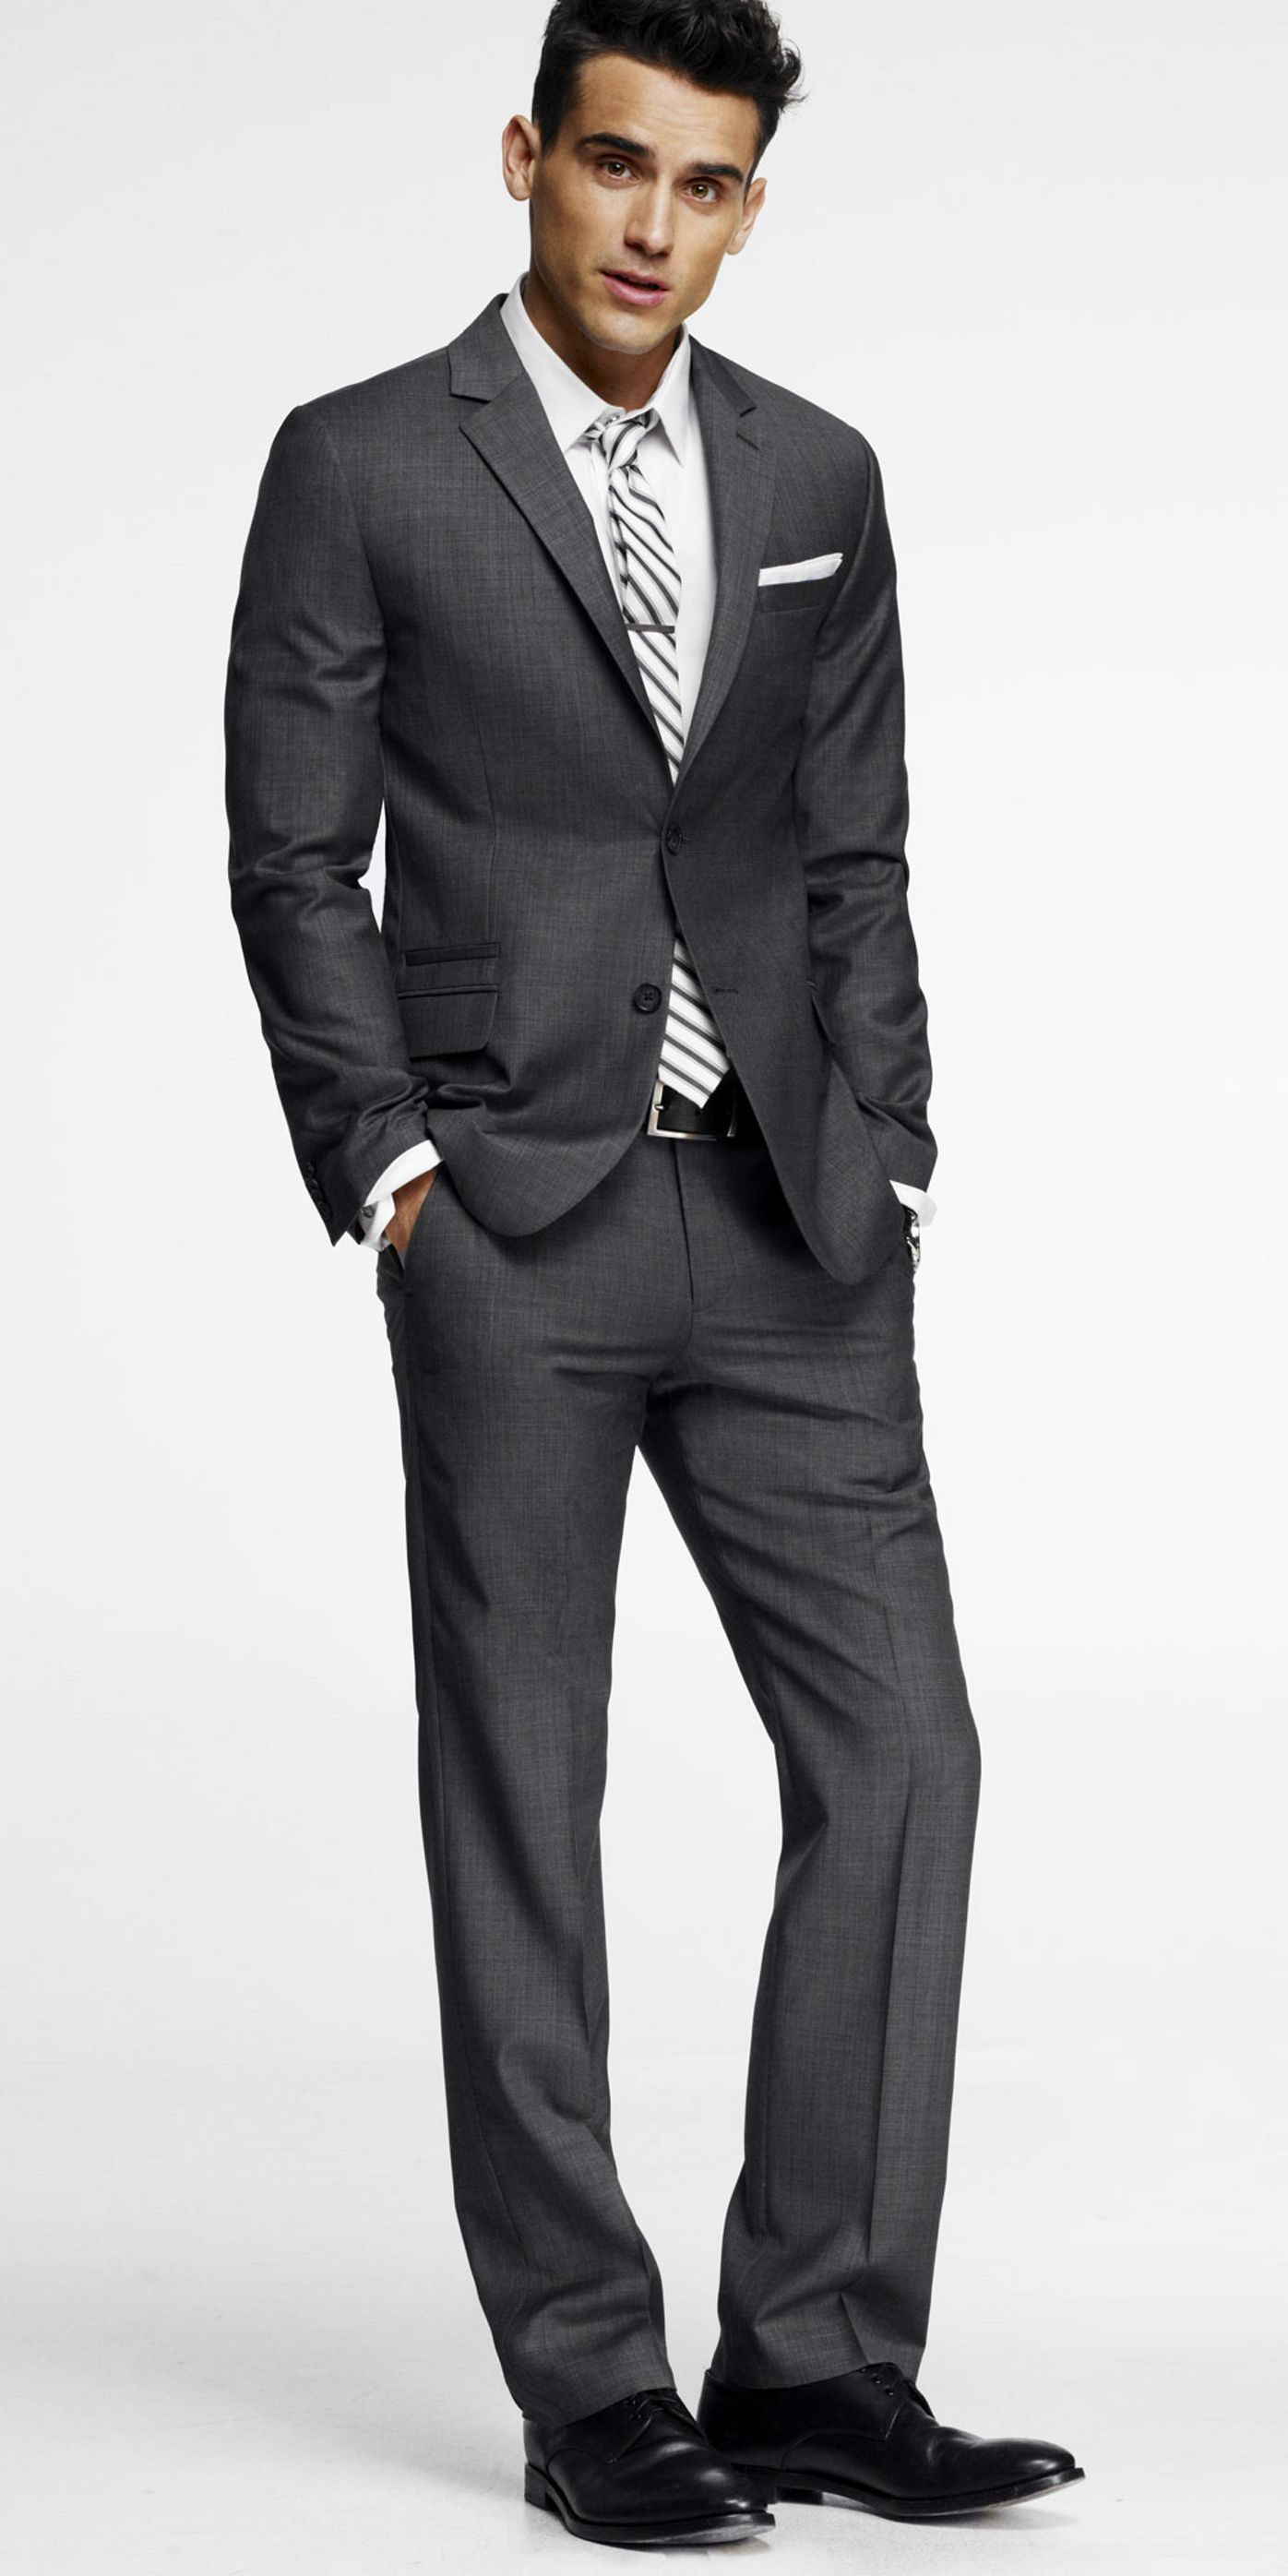 Bought it. Gray suit instead of a tux. Has a nice modern slim-fit ...